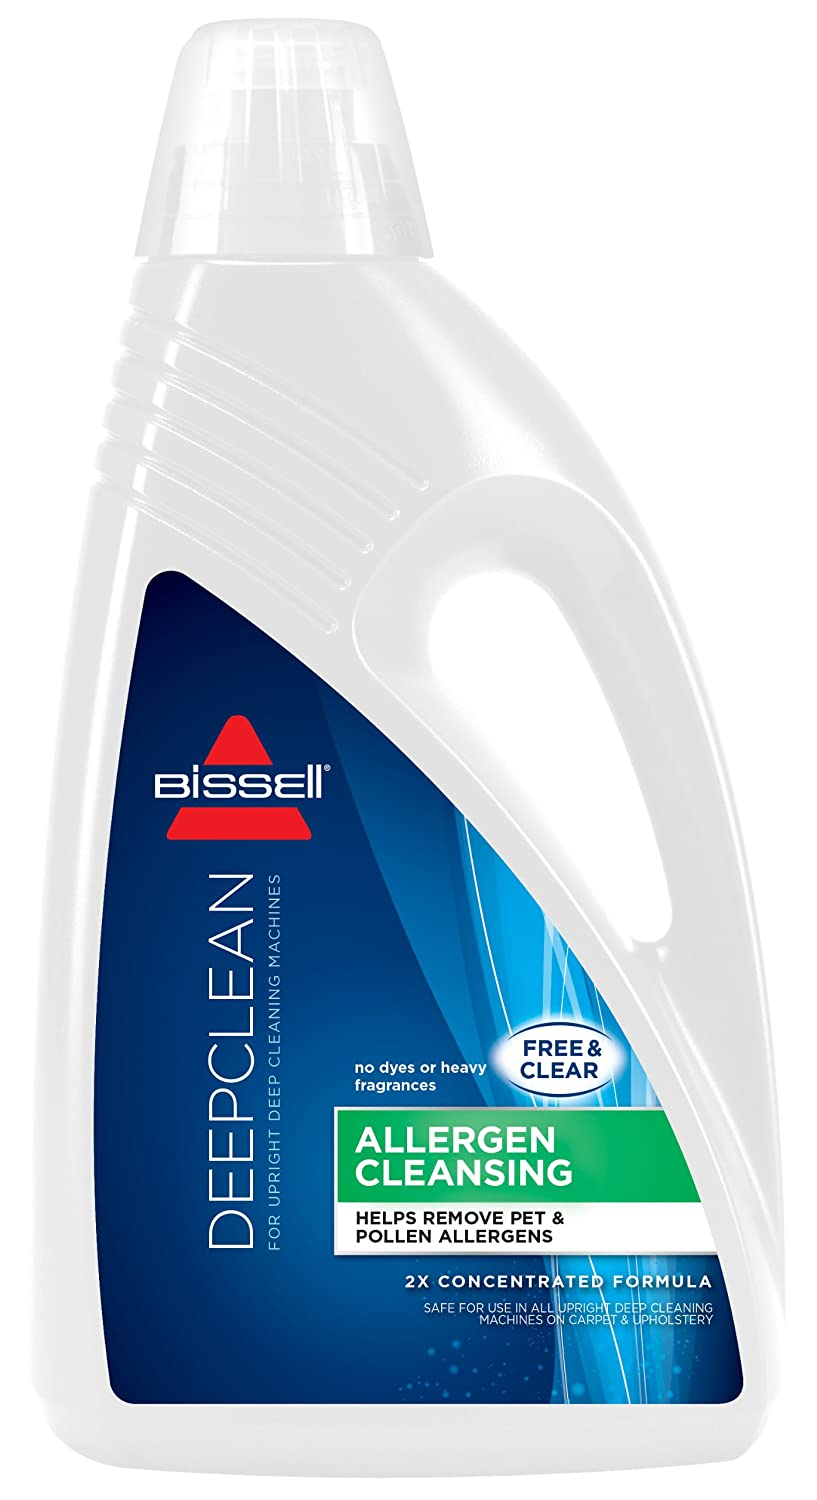 BISSELL 2X Allergen Cleansing Full Size Machine Formula, 60 ounces, 89Q5D